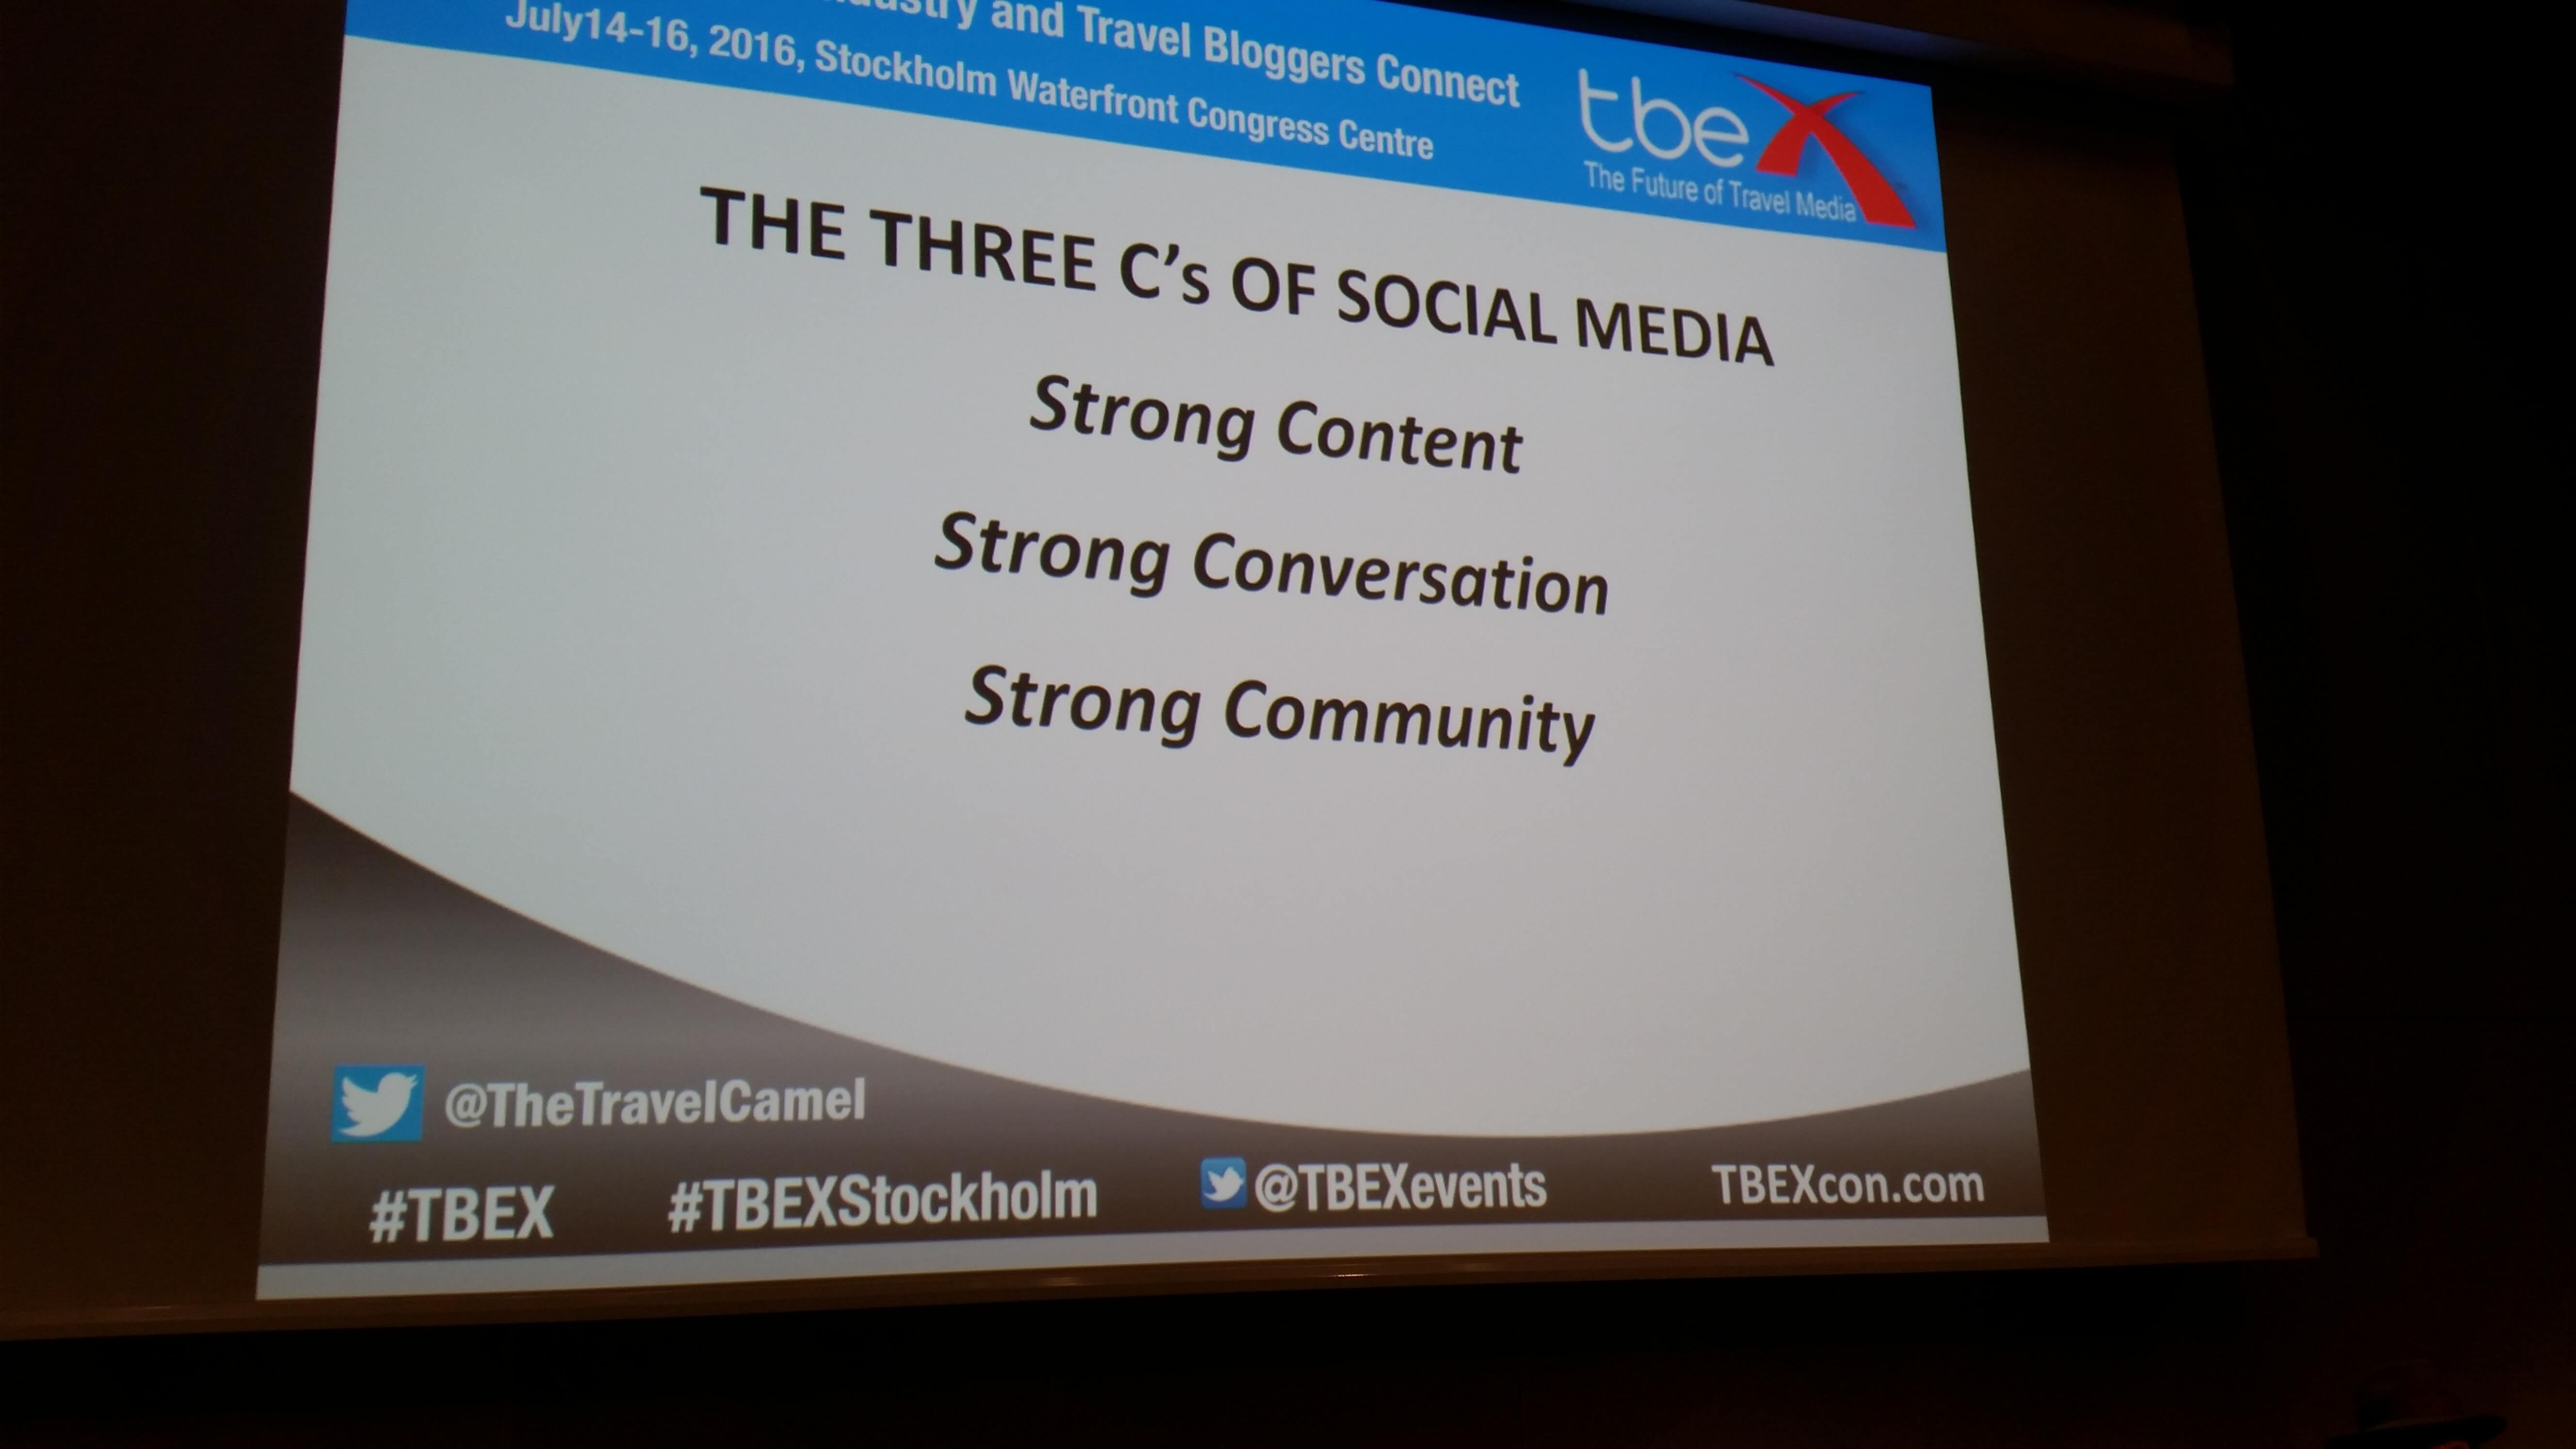 Social Media & SEO Tips - The Best Insights from Travel Blogging Conferences in the Last 5 Years! [6/10] || The Travel Tester